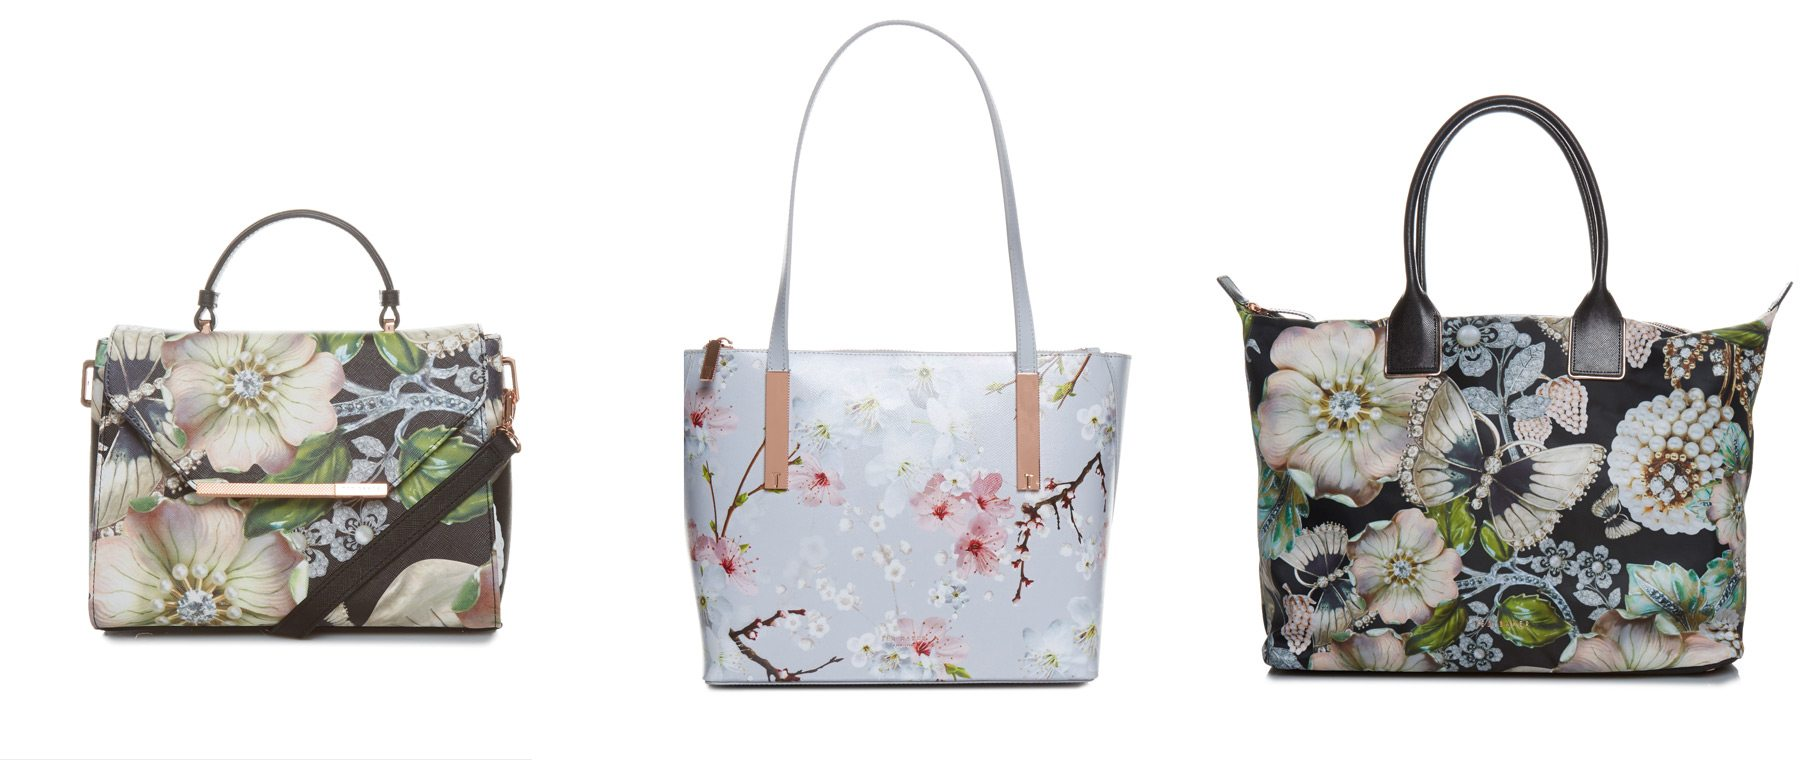 Most Wanted: Blooming bags